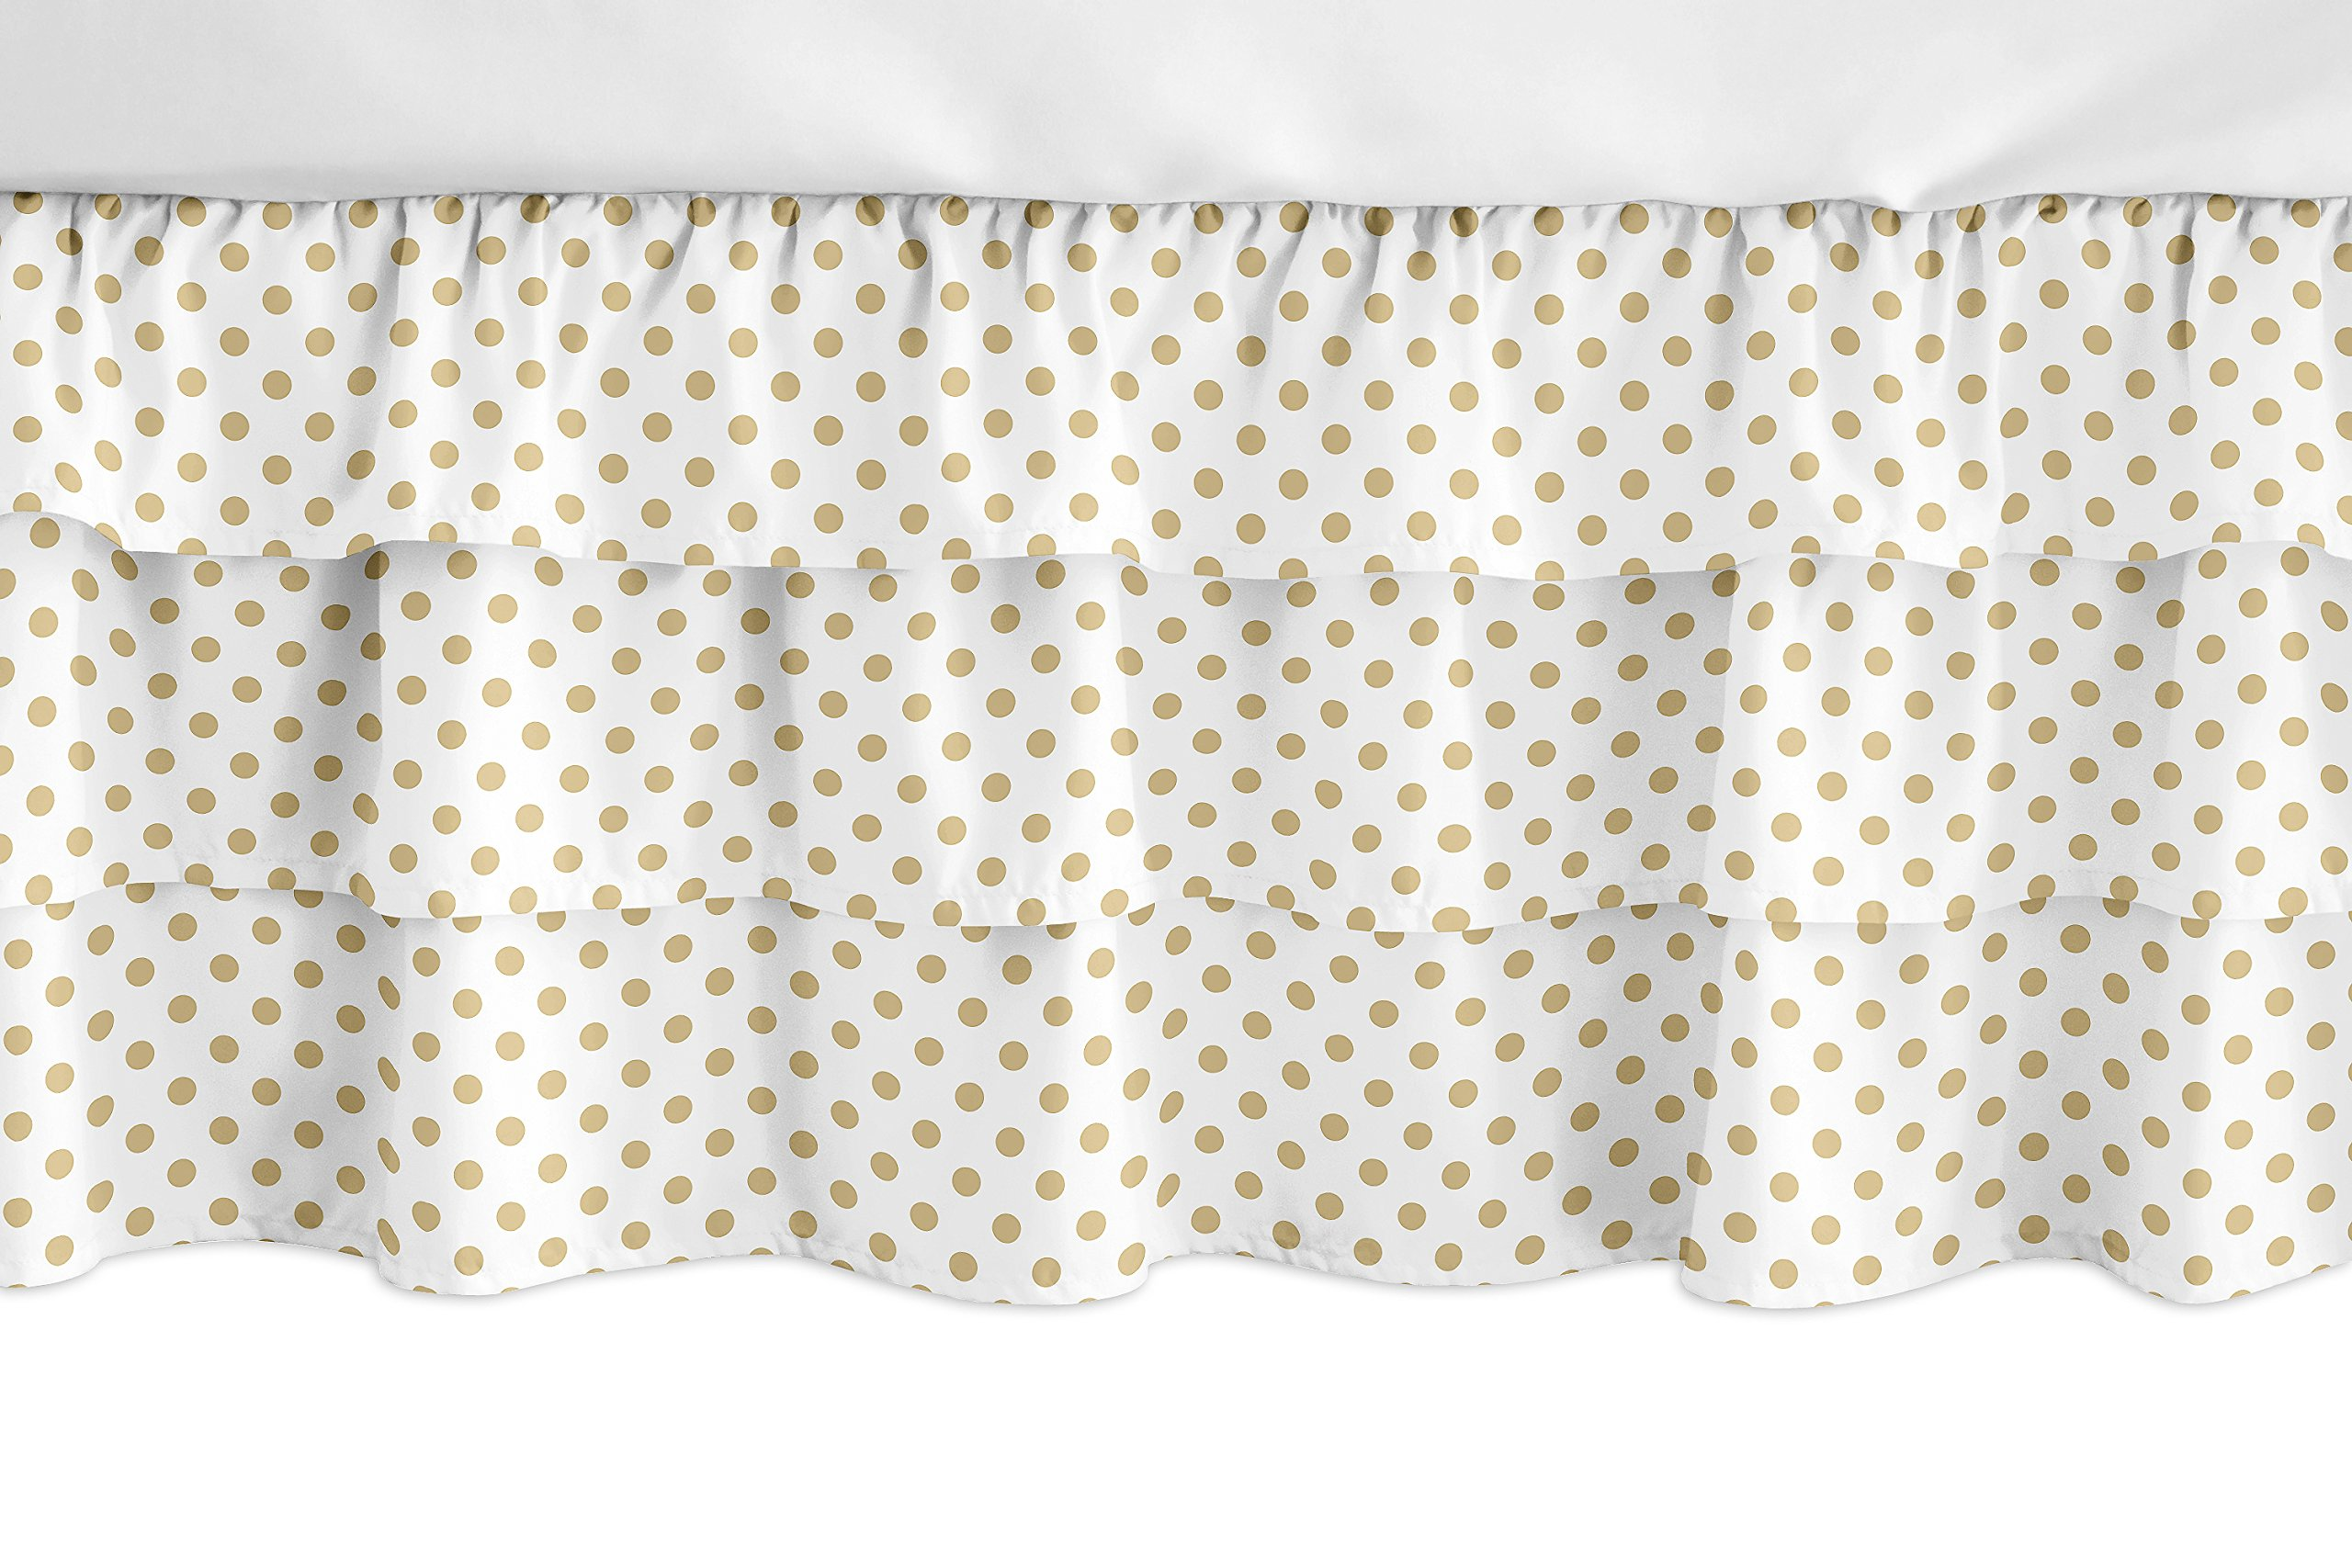 Sweet Jojo Designs Gold and White Polka Dot Girl Ruffled Tiered Baby Crib Bed Skirt Dust Ruffle for Watercolor Floral Collection by Sweet Jojo Designs